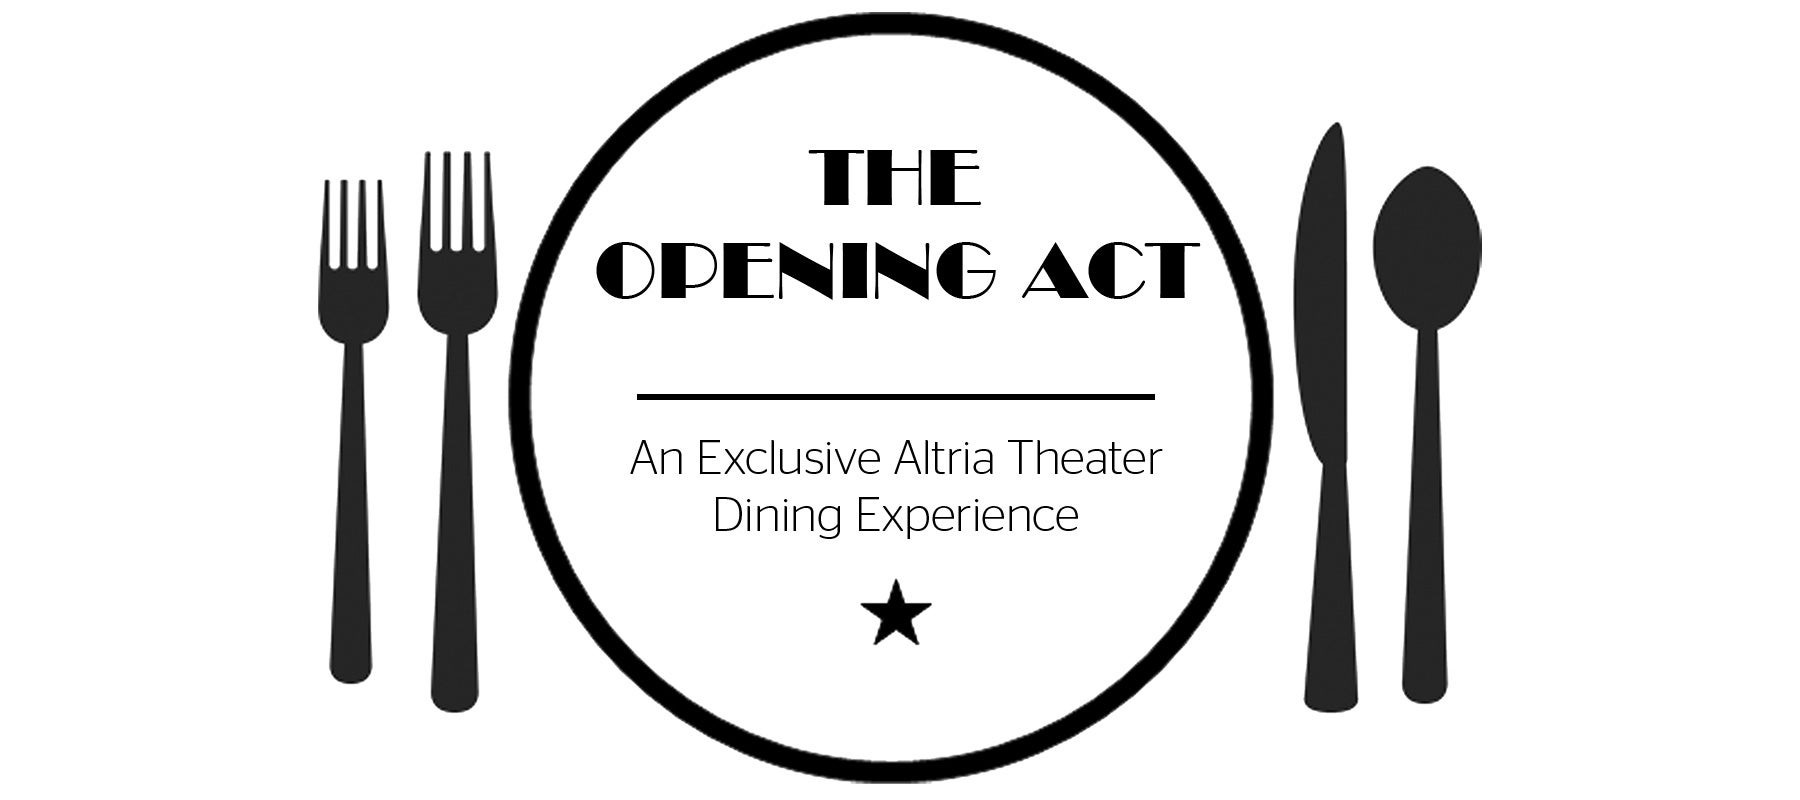 The Opening Act Is Back with Cats: Altria Theater to Offer Pre-Show Dining Option Again